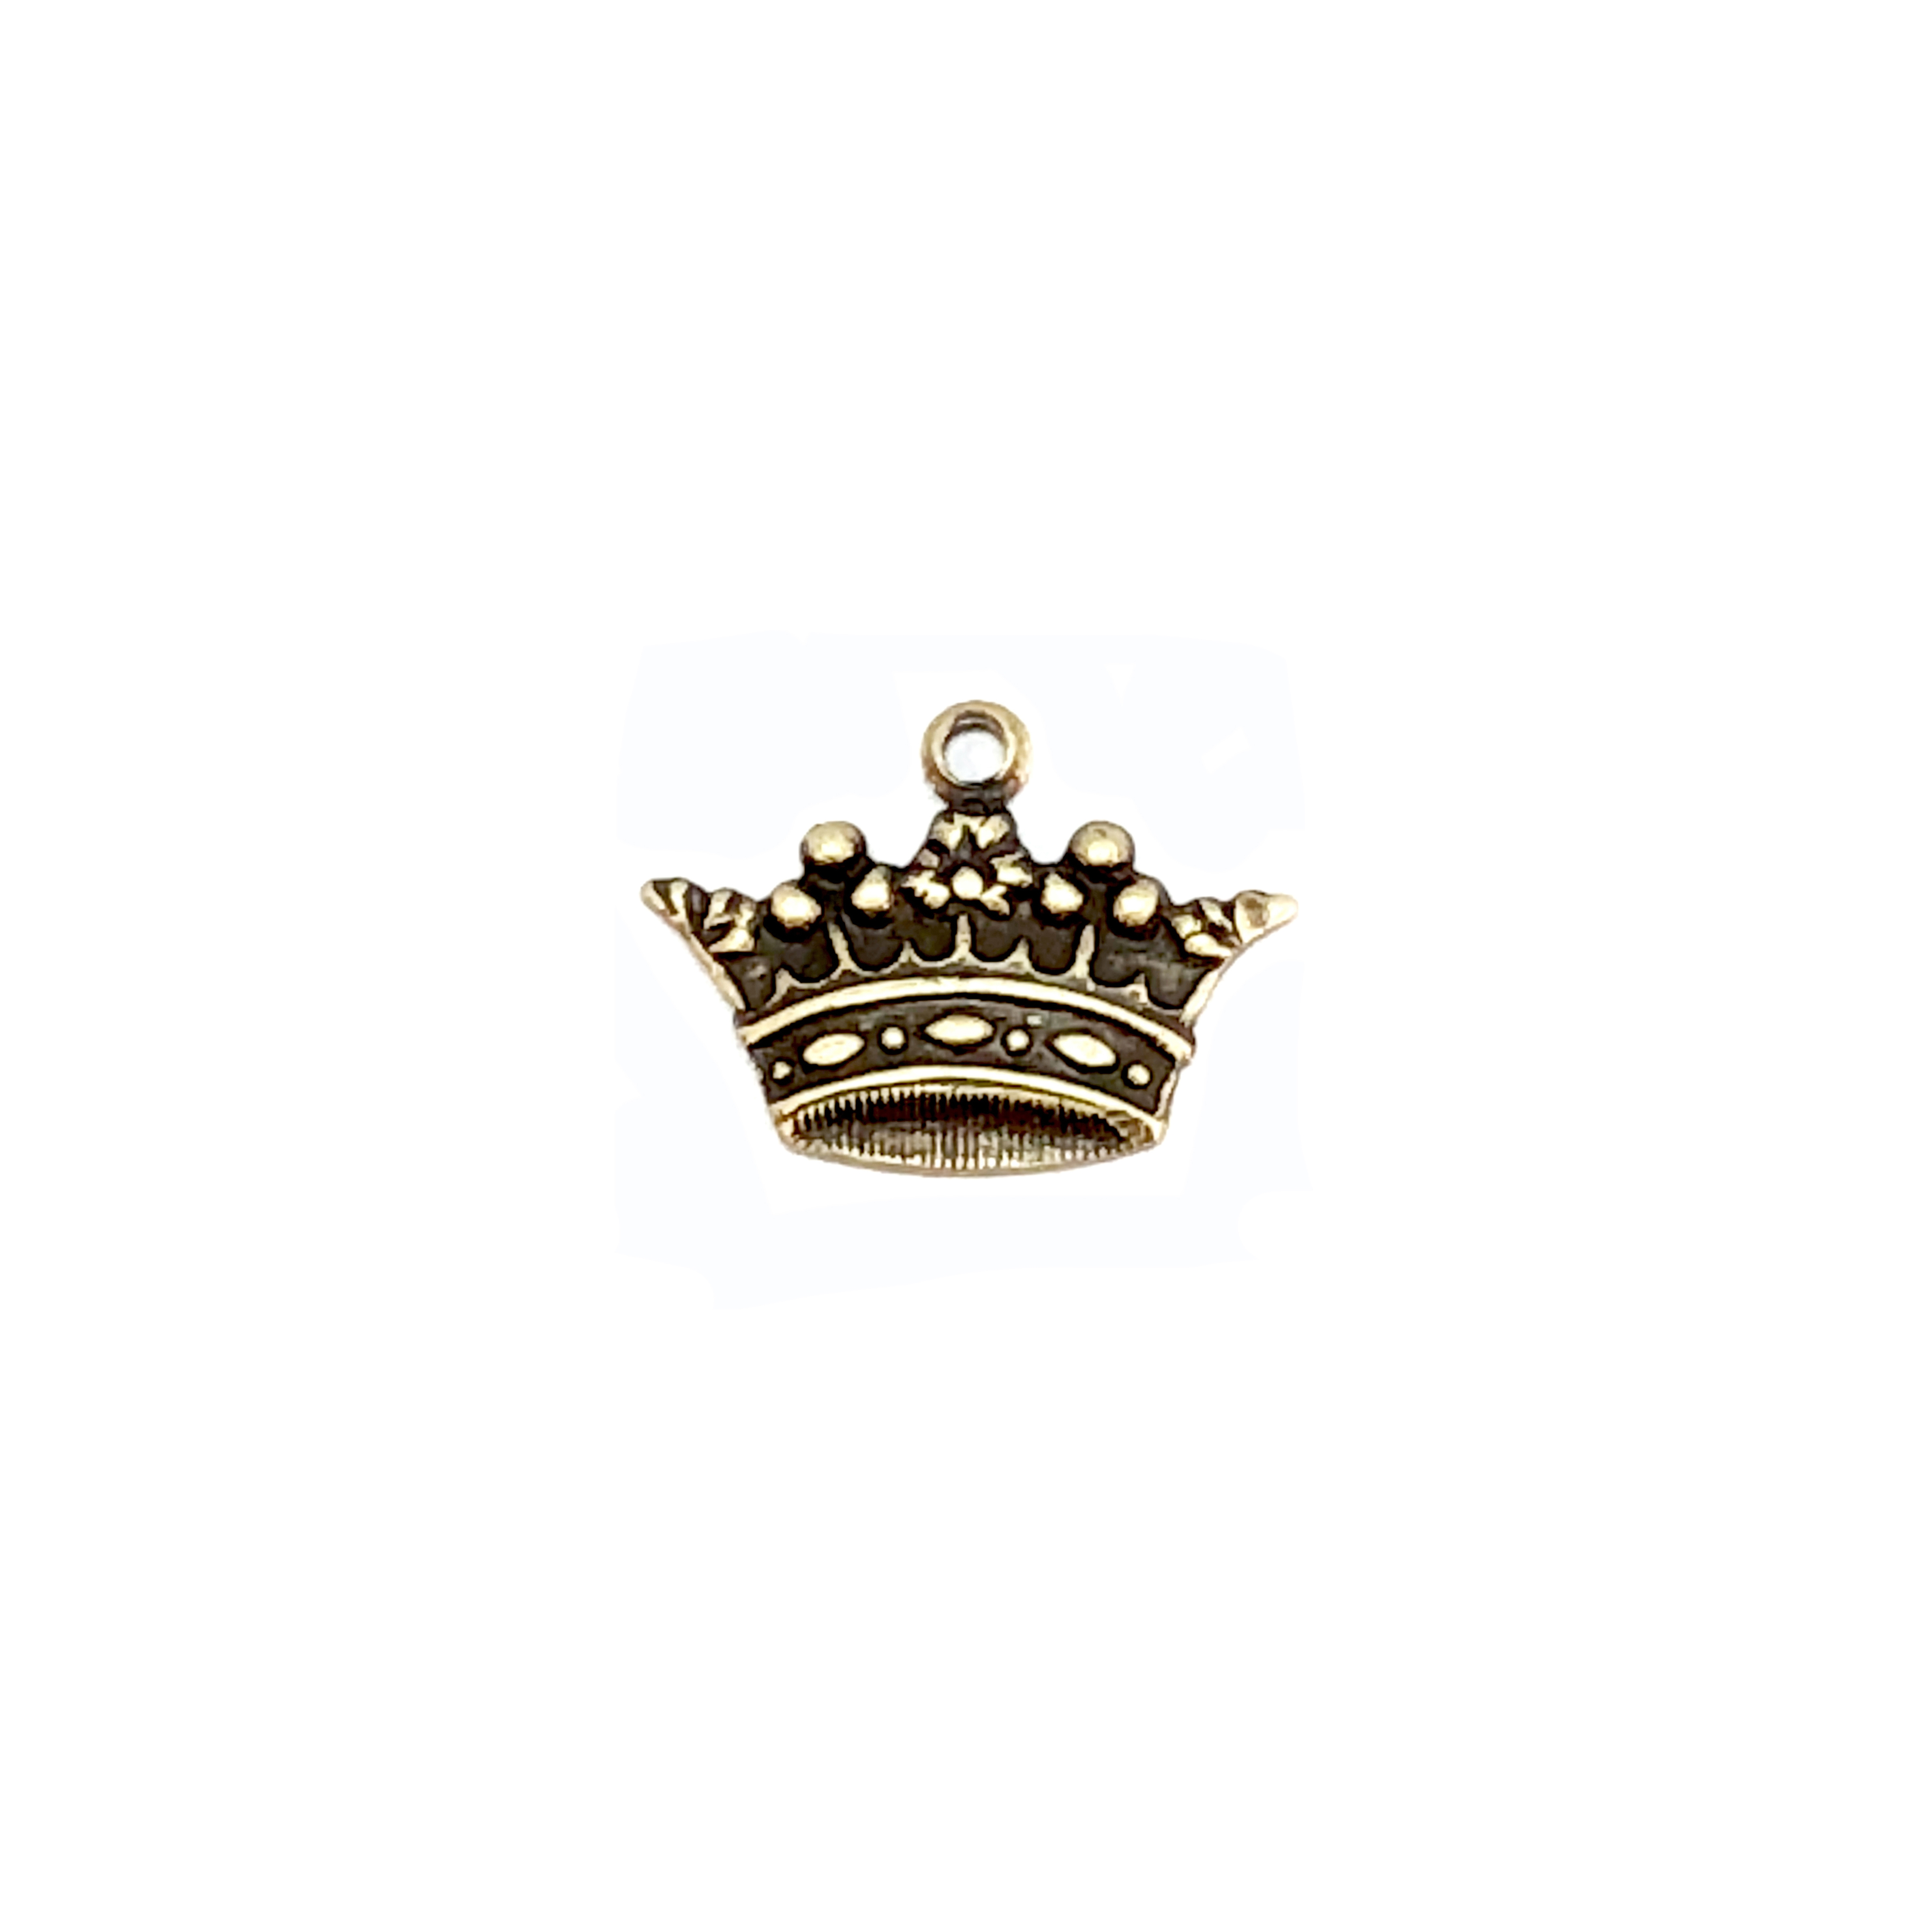 brass crown charm, brass ox, 05232, crown charms, antique brass, black antiquing, vintage jewelry supplies, jewelry making supplies, doll jewelry, US made, nickel free jewelry supplies, bsue boutiques